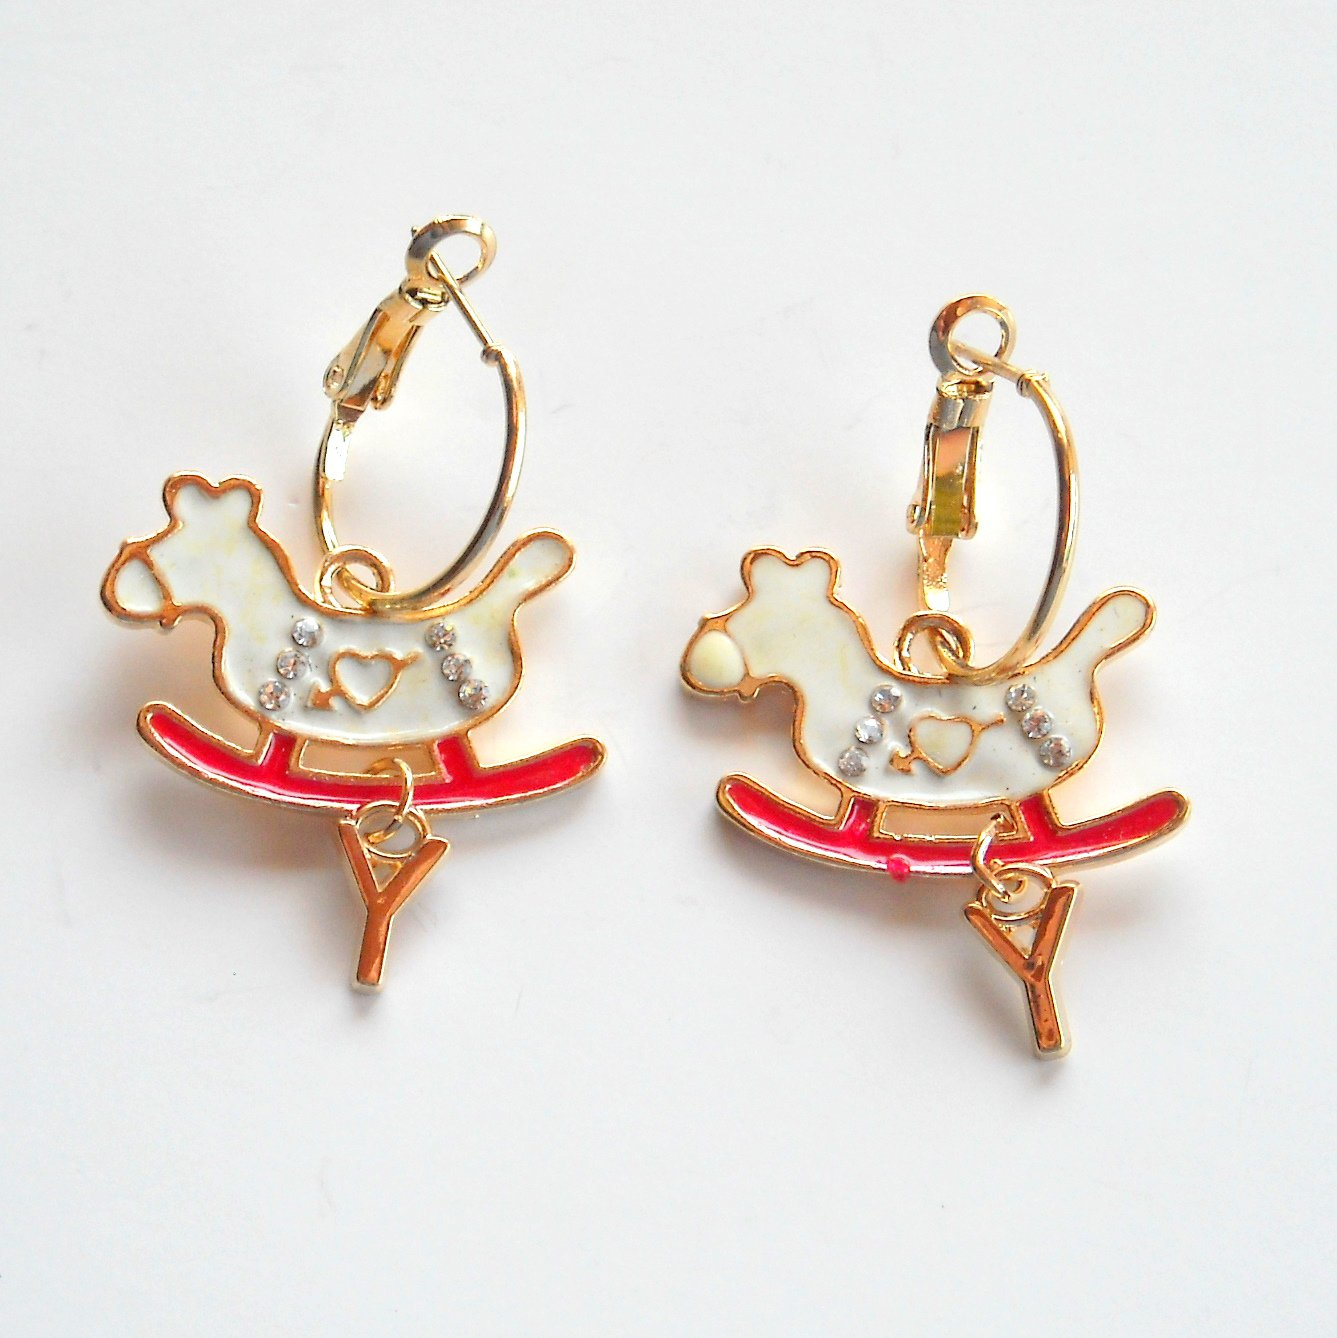 Rocking Horse with letter Y Gold color Metal Dangle French Lock Fashion Earrings